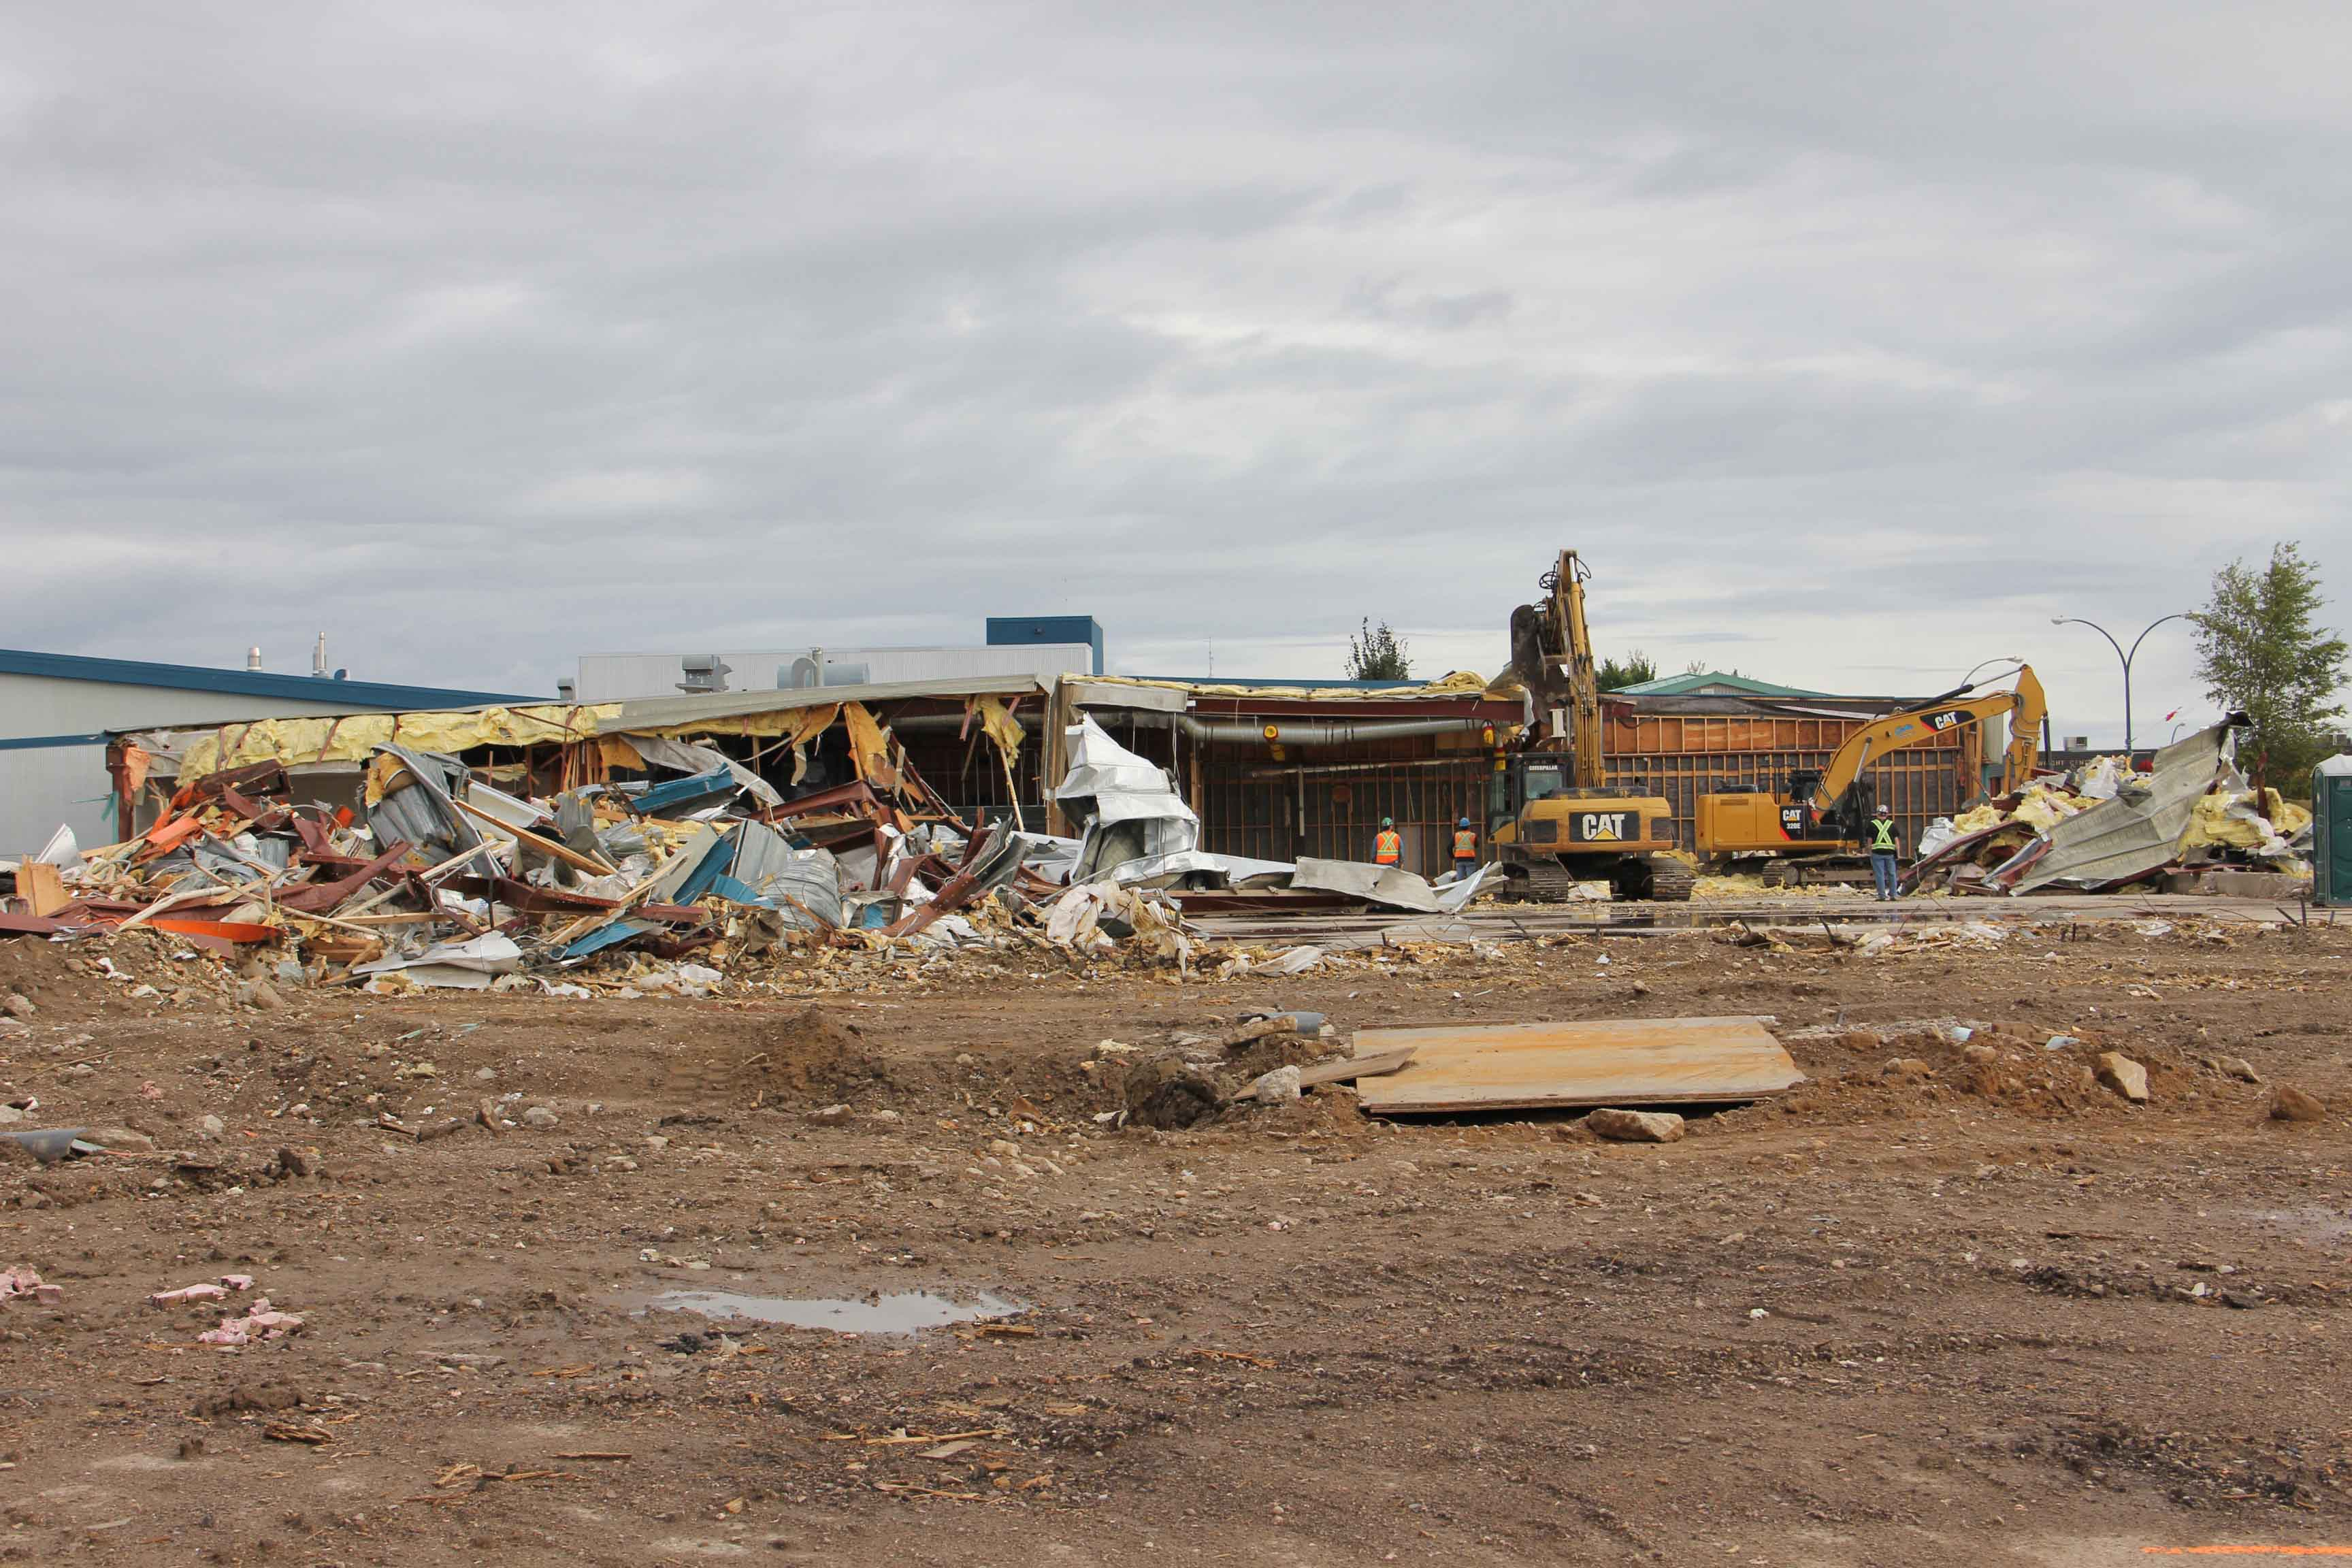 Decades from now, this scene from 2016 - the demolition of the old Rec Centre - may repeat itself in Hay River, and town council is planning ahead to pay for replacing the still-new Rec Centre. NNSL file photo